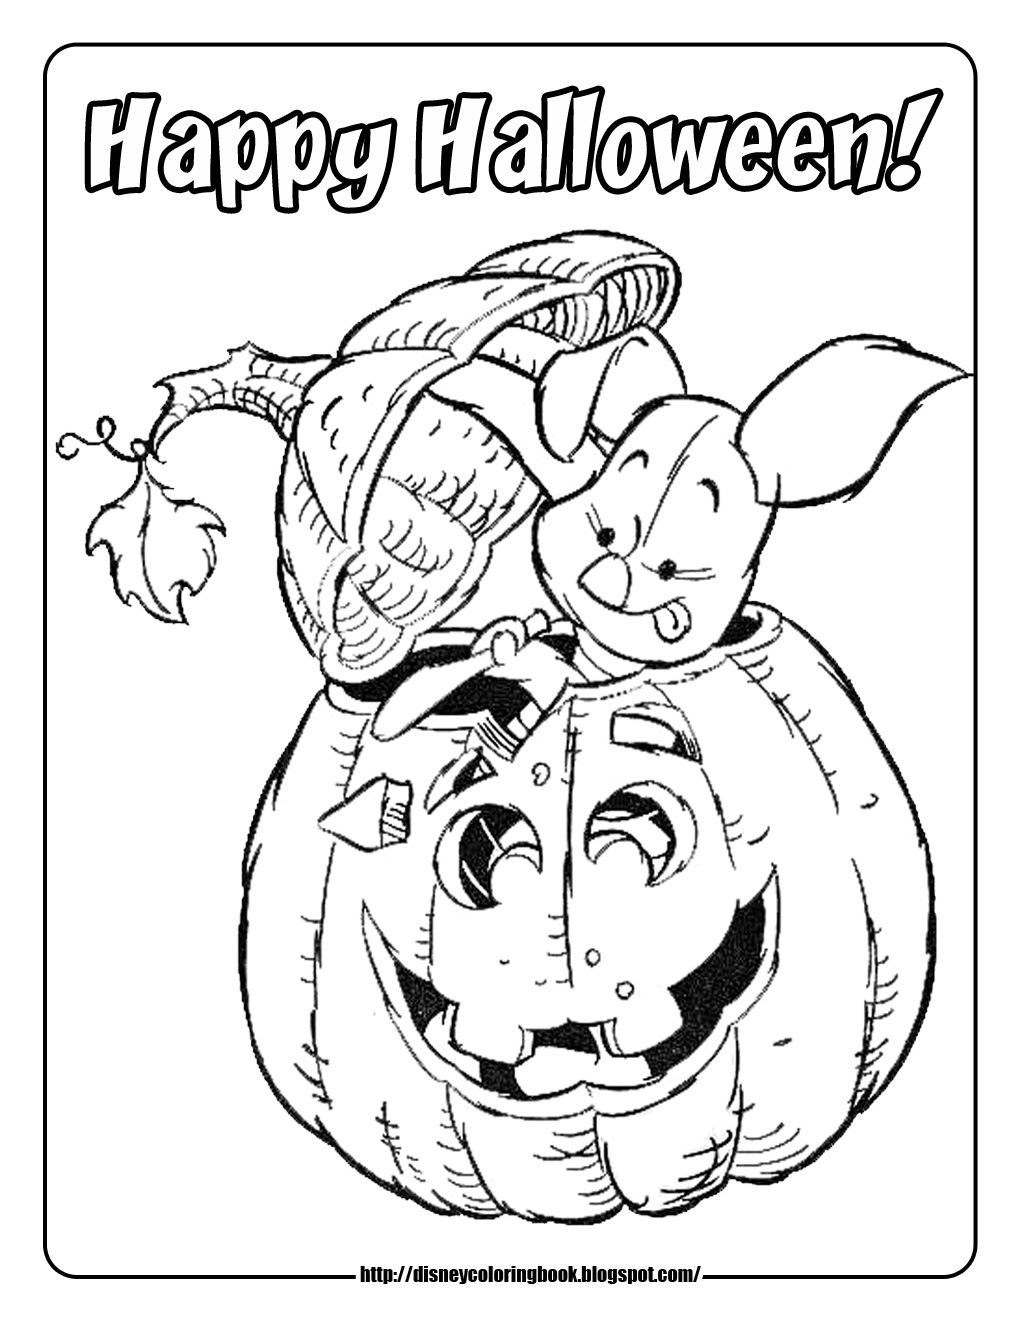 Disney Coloring Pages and Sheets for Kids: Pooh and Friends